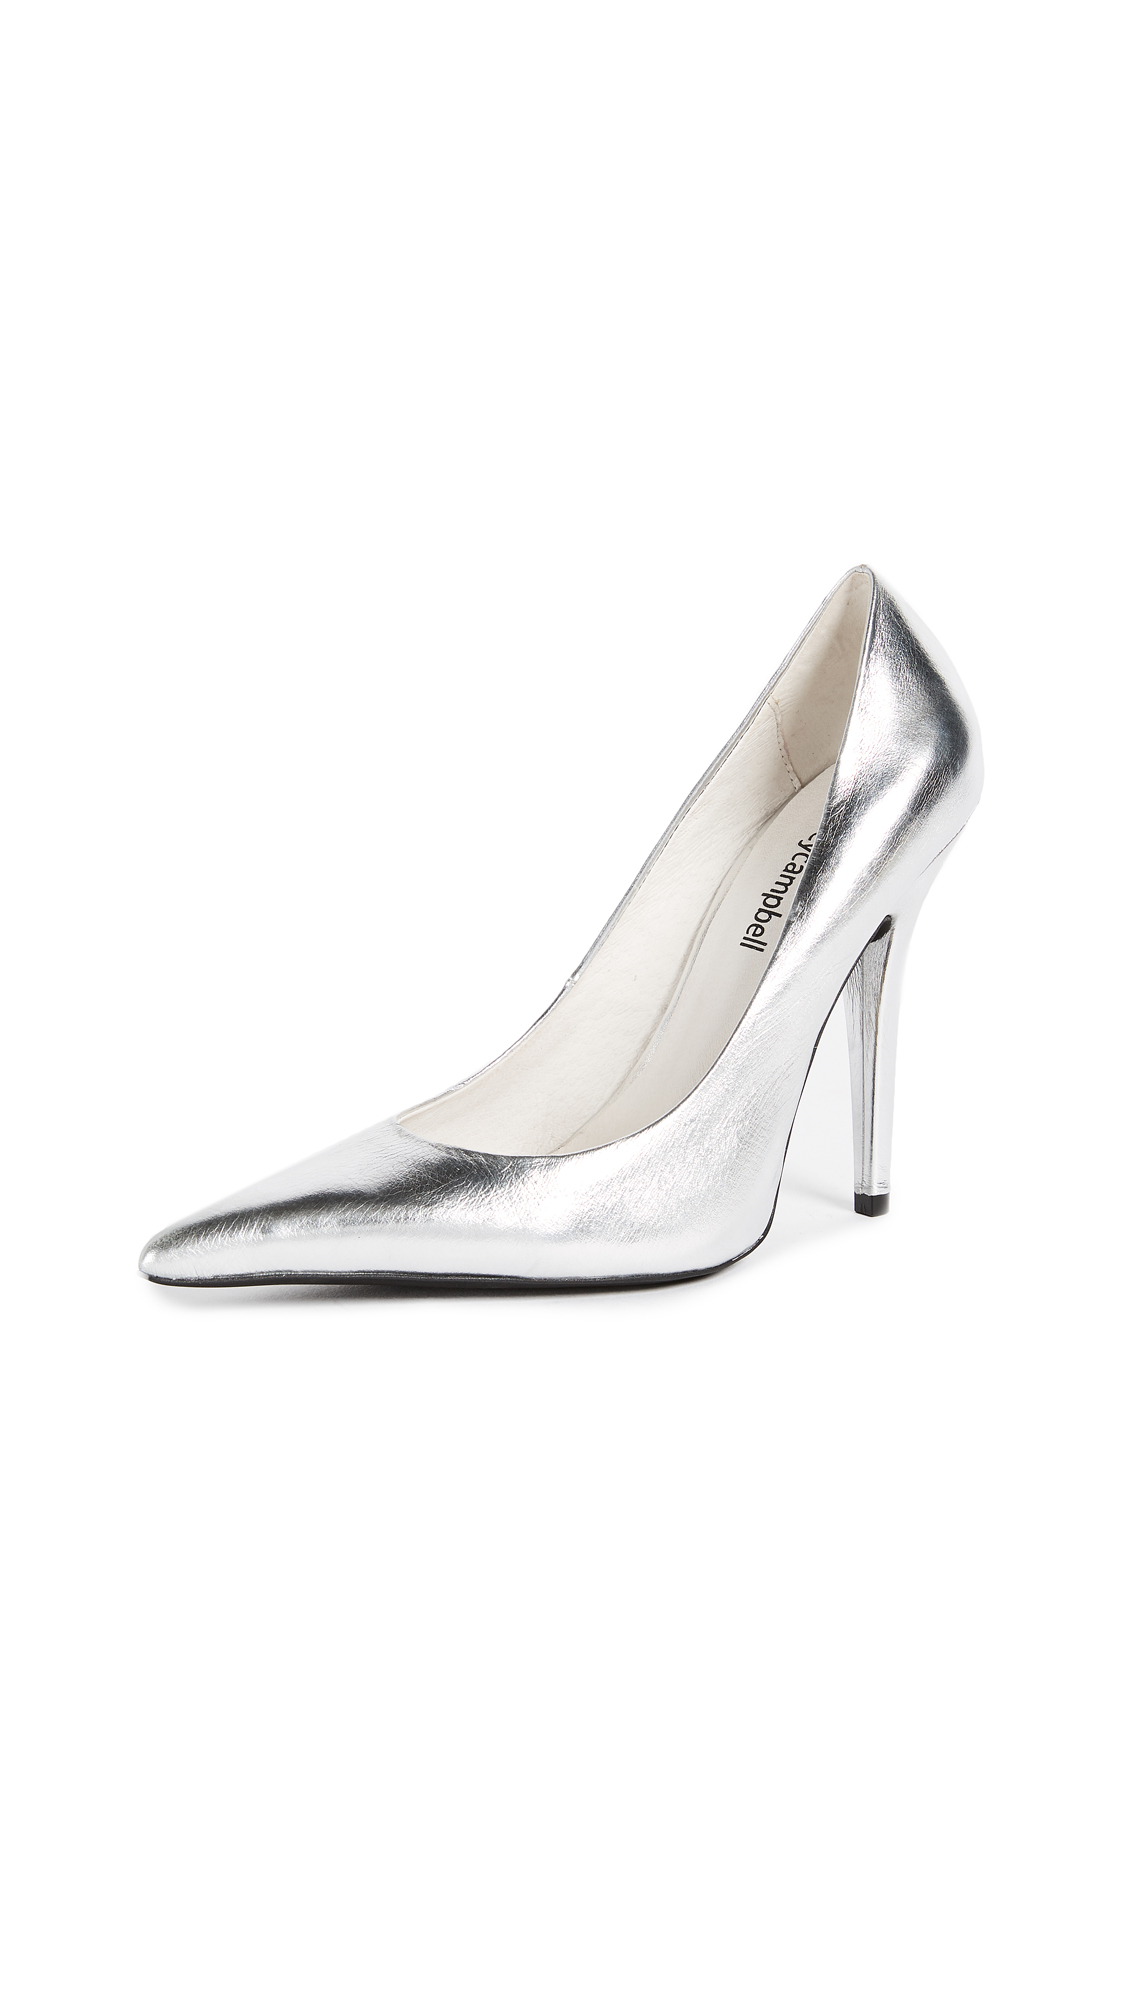 Jeffrey Campbell Ikon Point Toe Pumps - Silver